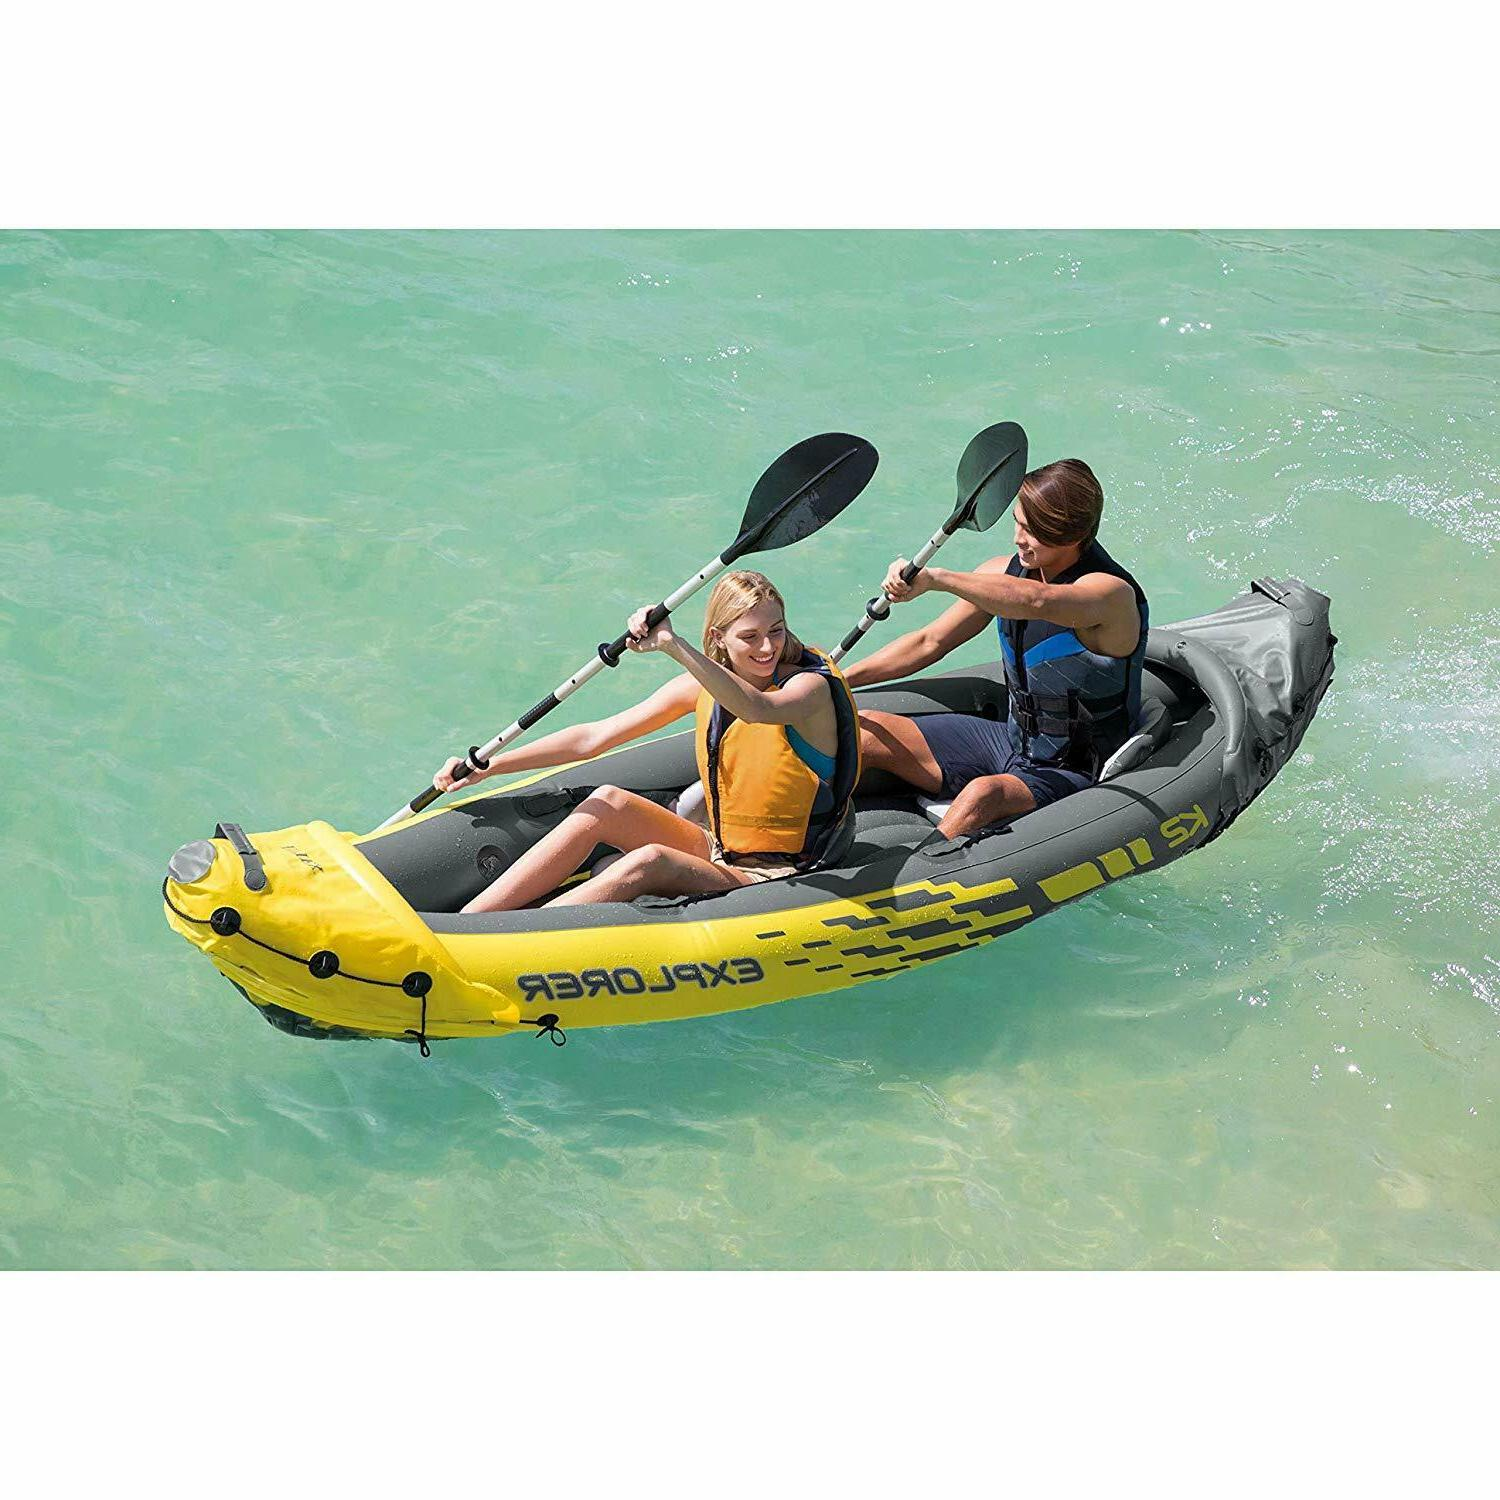 Fishing Kayak 2 Person Inflatable Boat with Aluminum Oars an